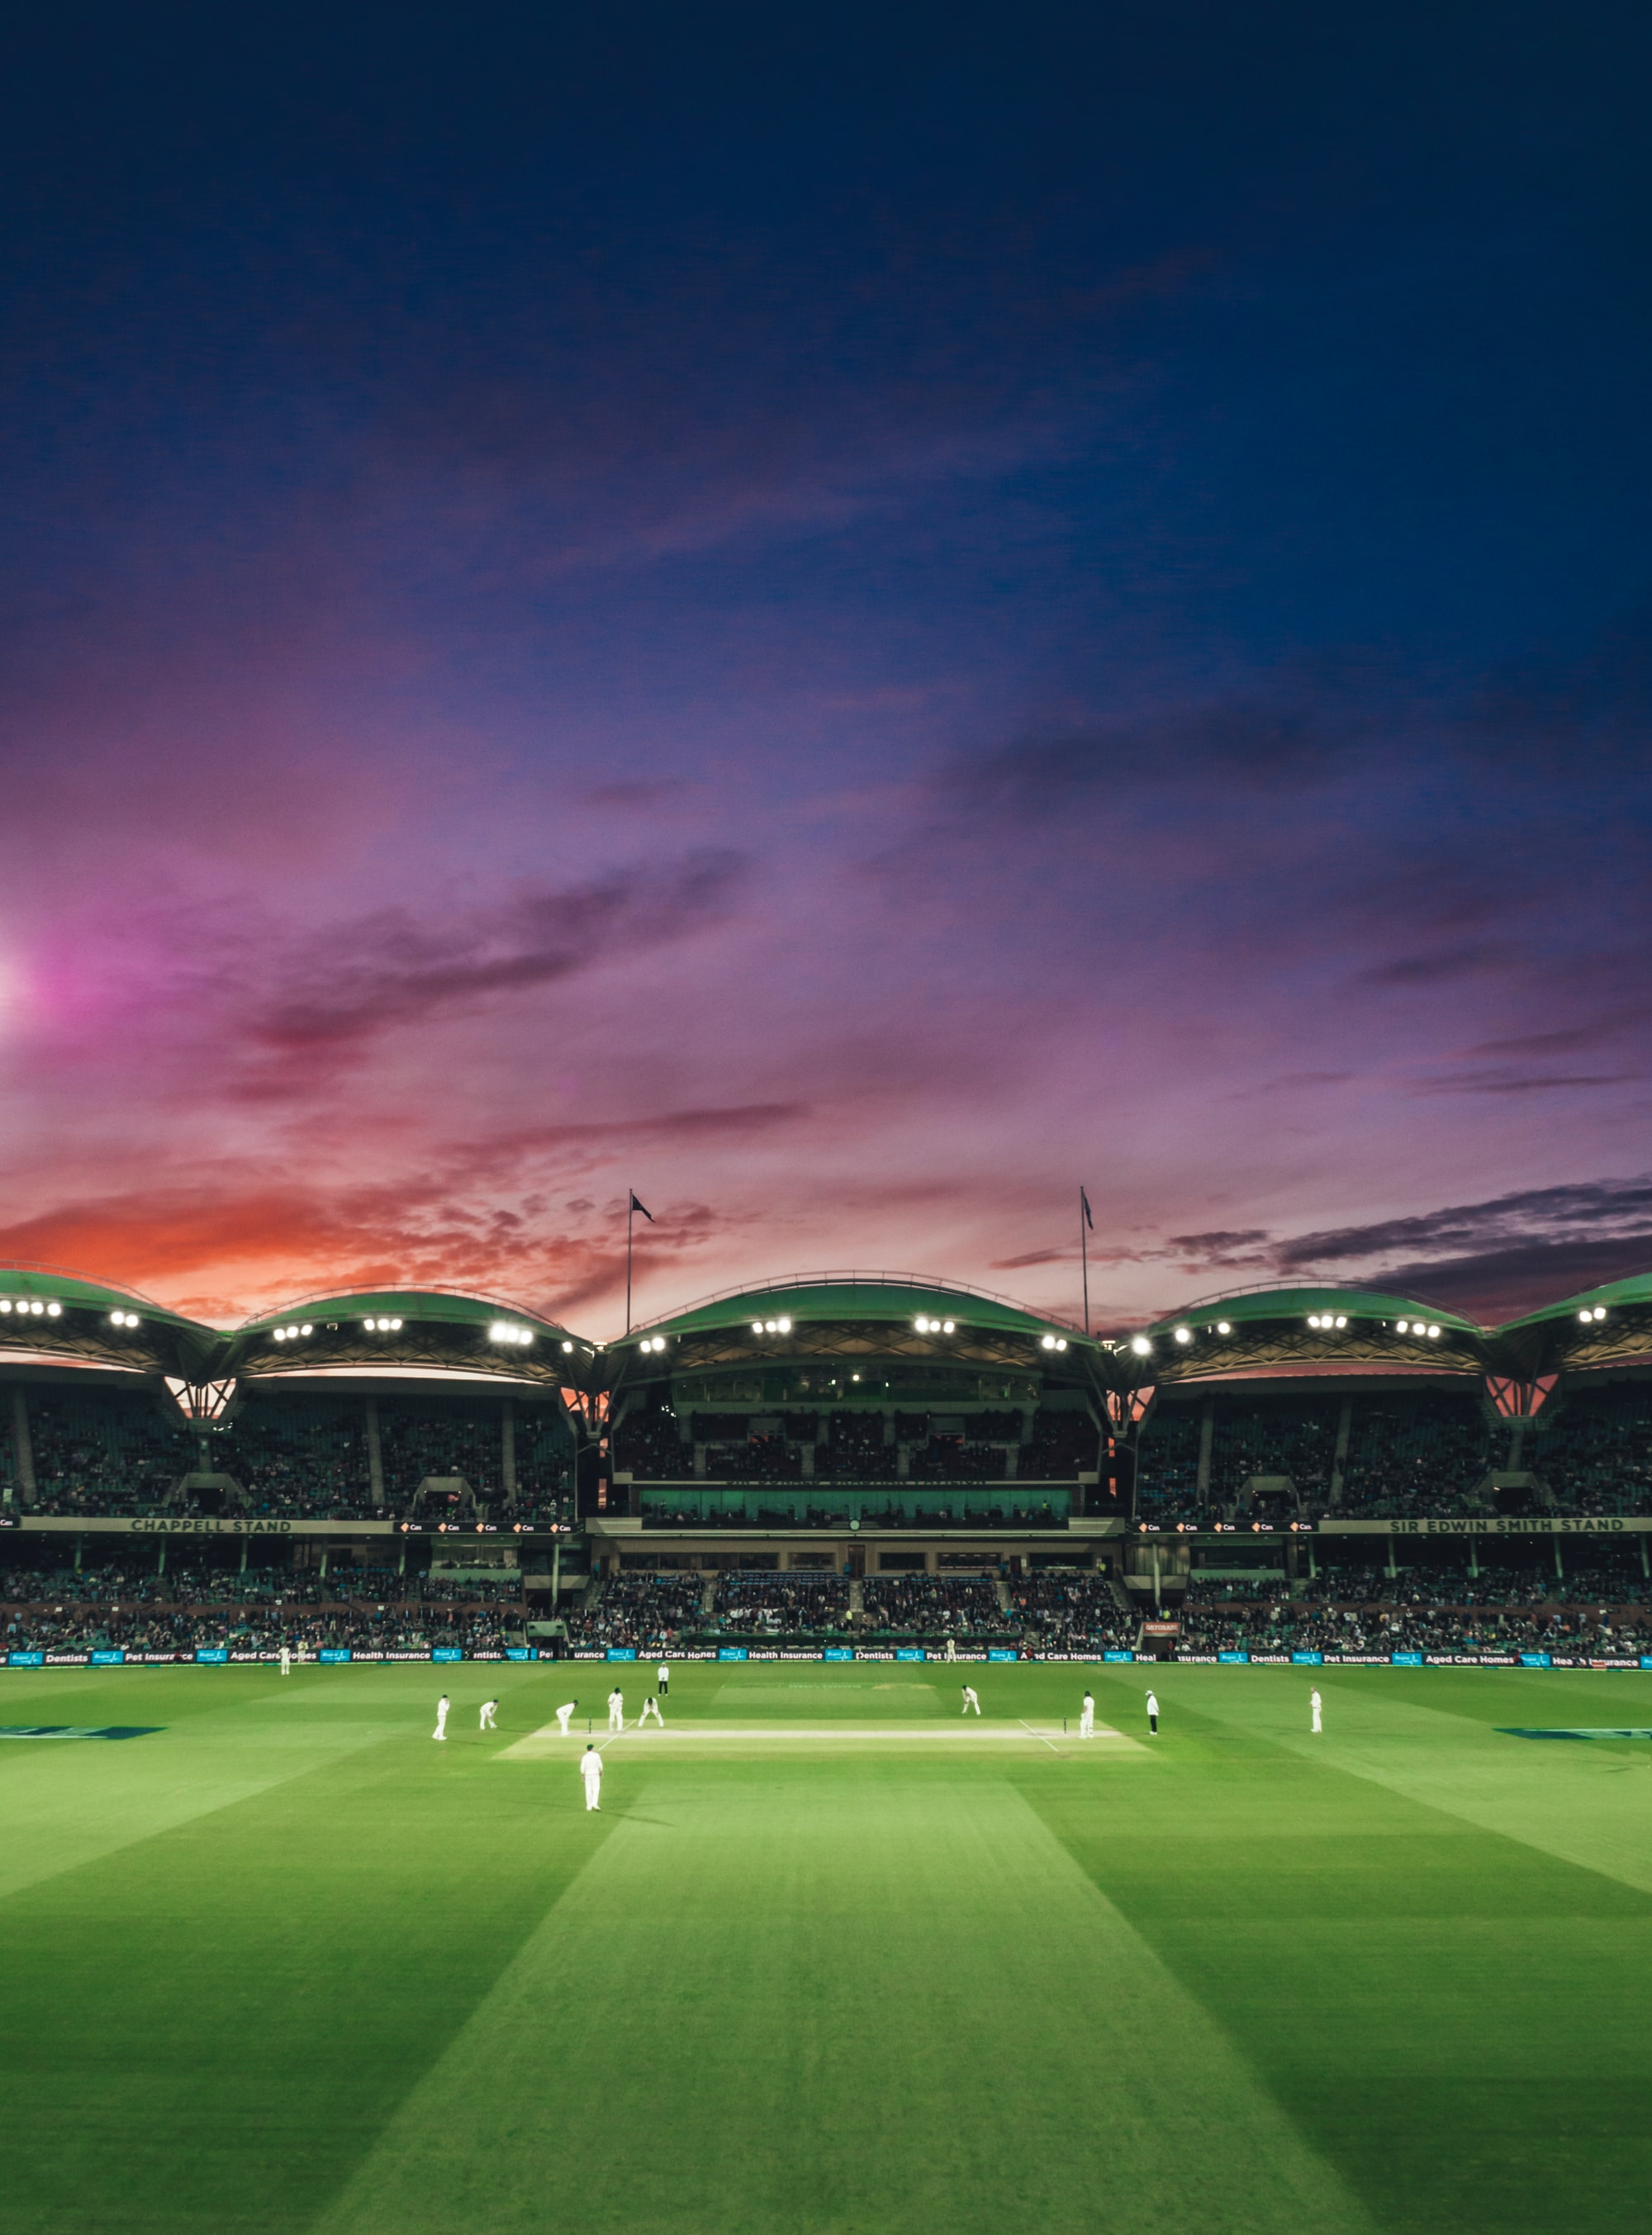 As the sun sets, so does the test match between England and Australia. Adelaide Oval, South Australia.